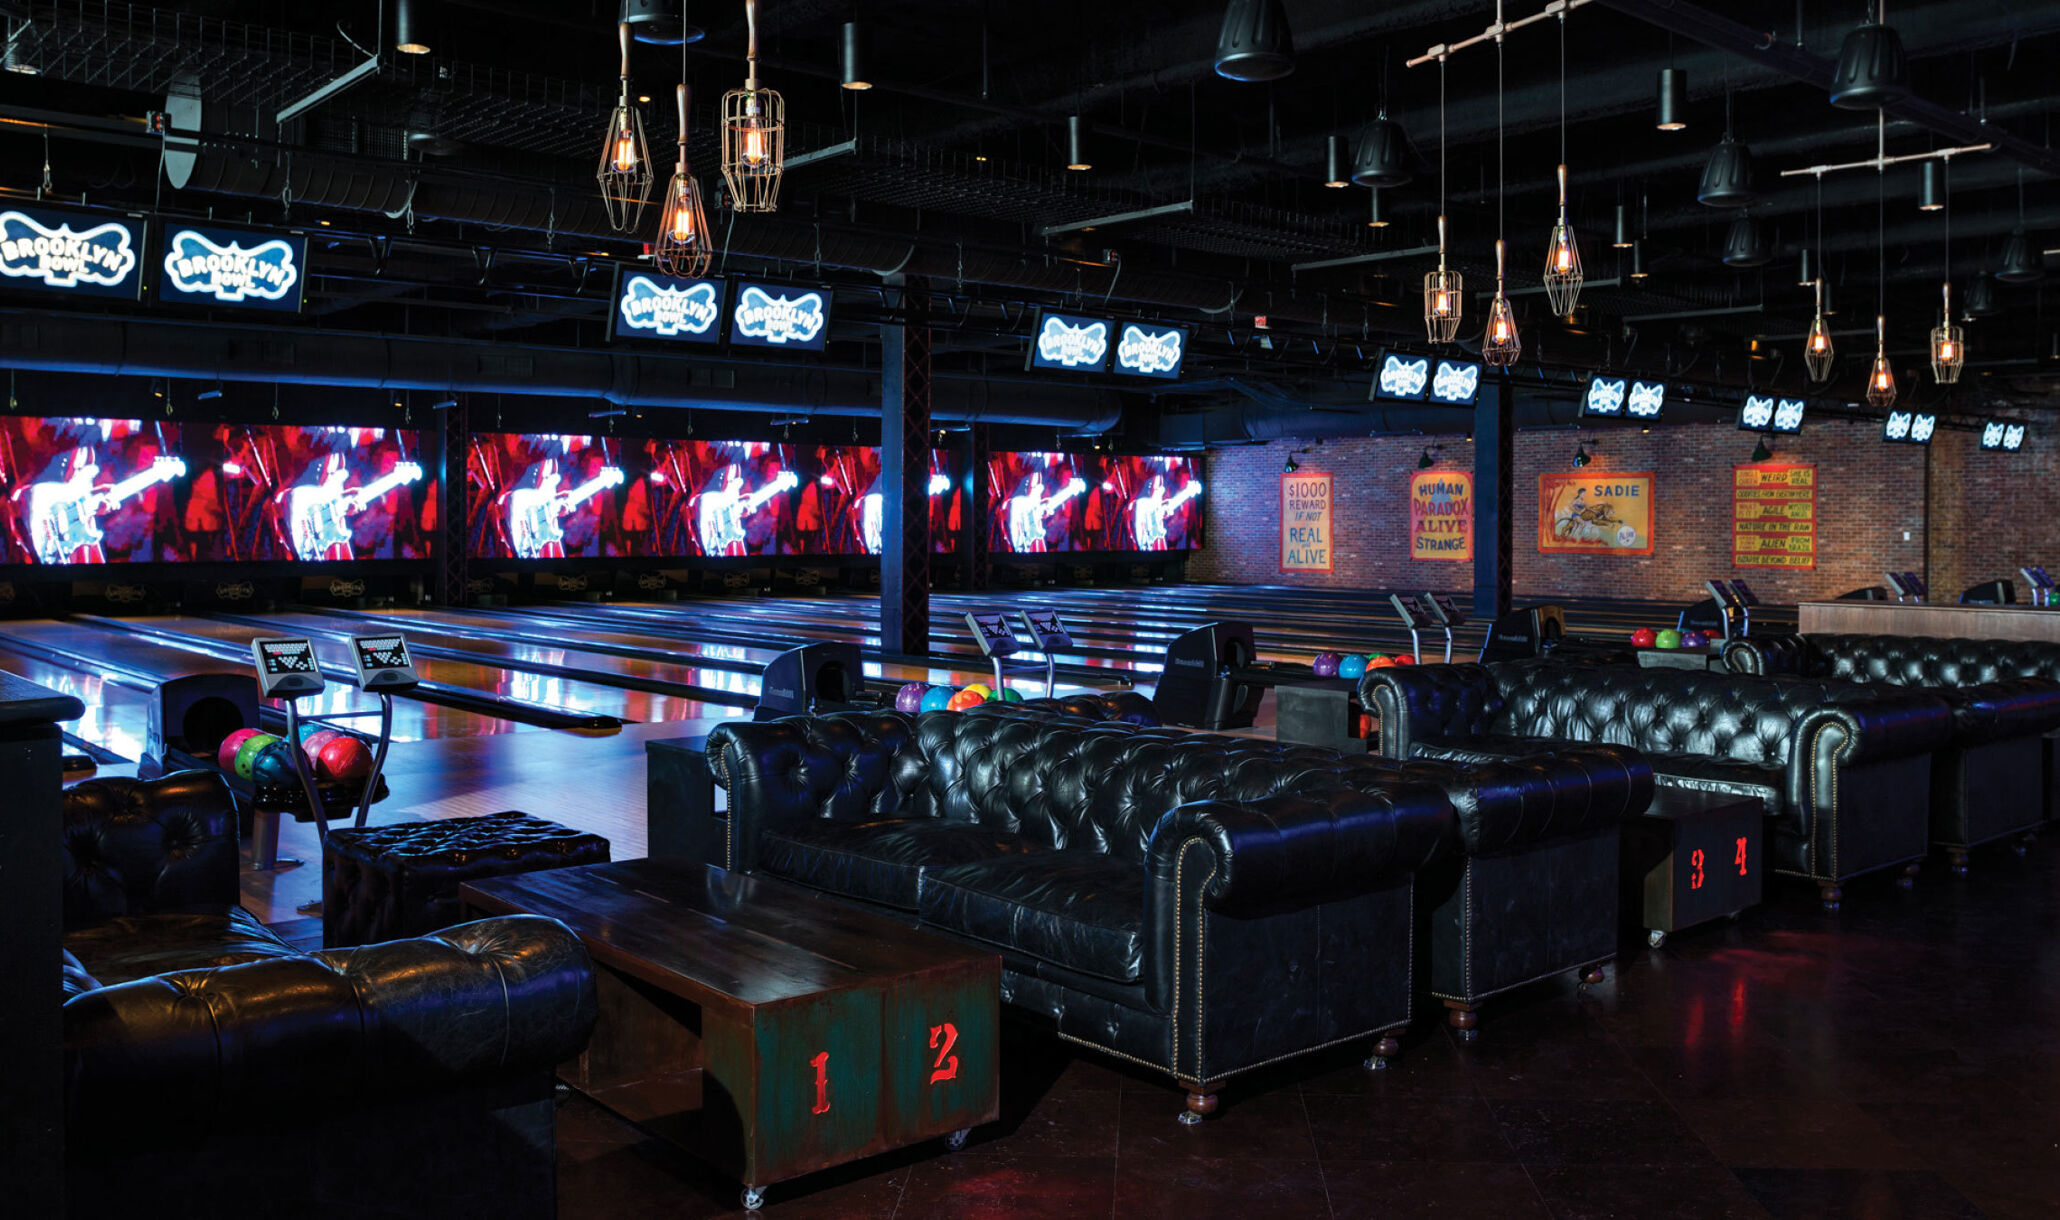 Ns Boutique Brooklyn Bowl Las Vegas Nv 16X9 03-2